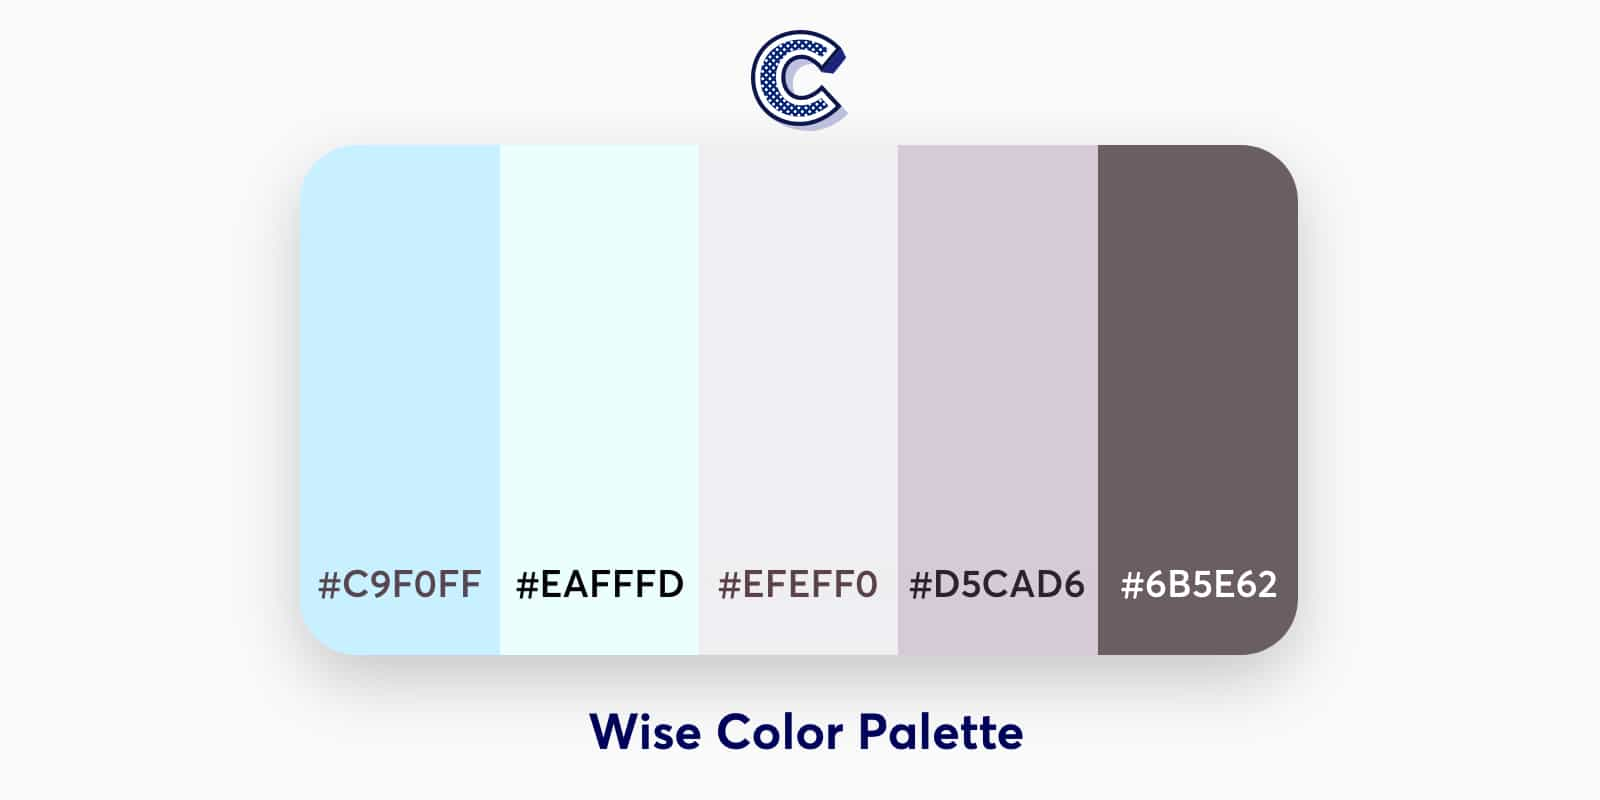 the featured image of wise color palette